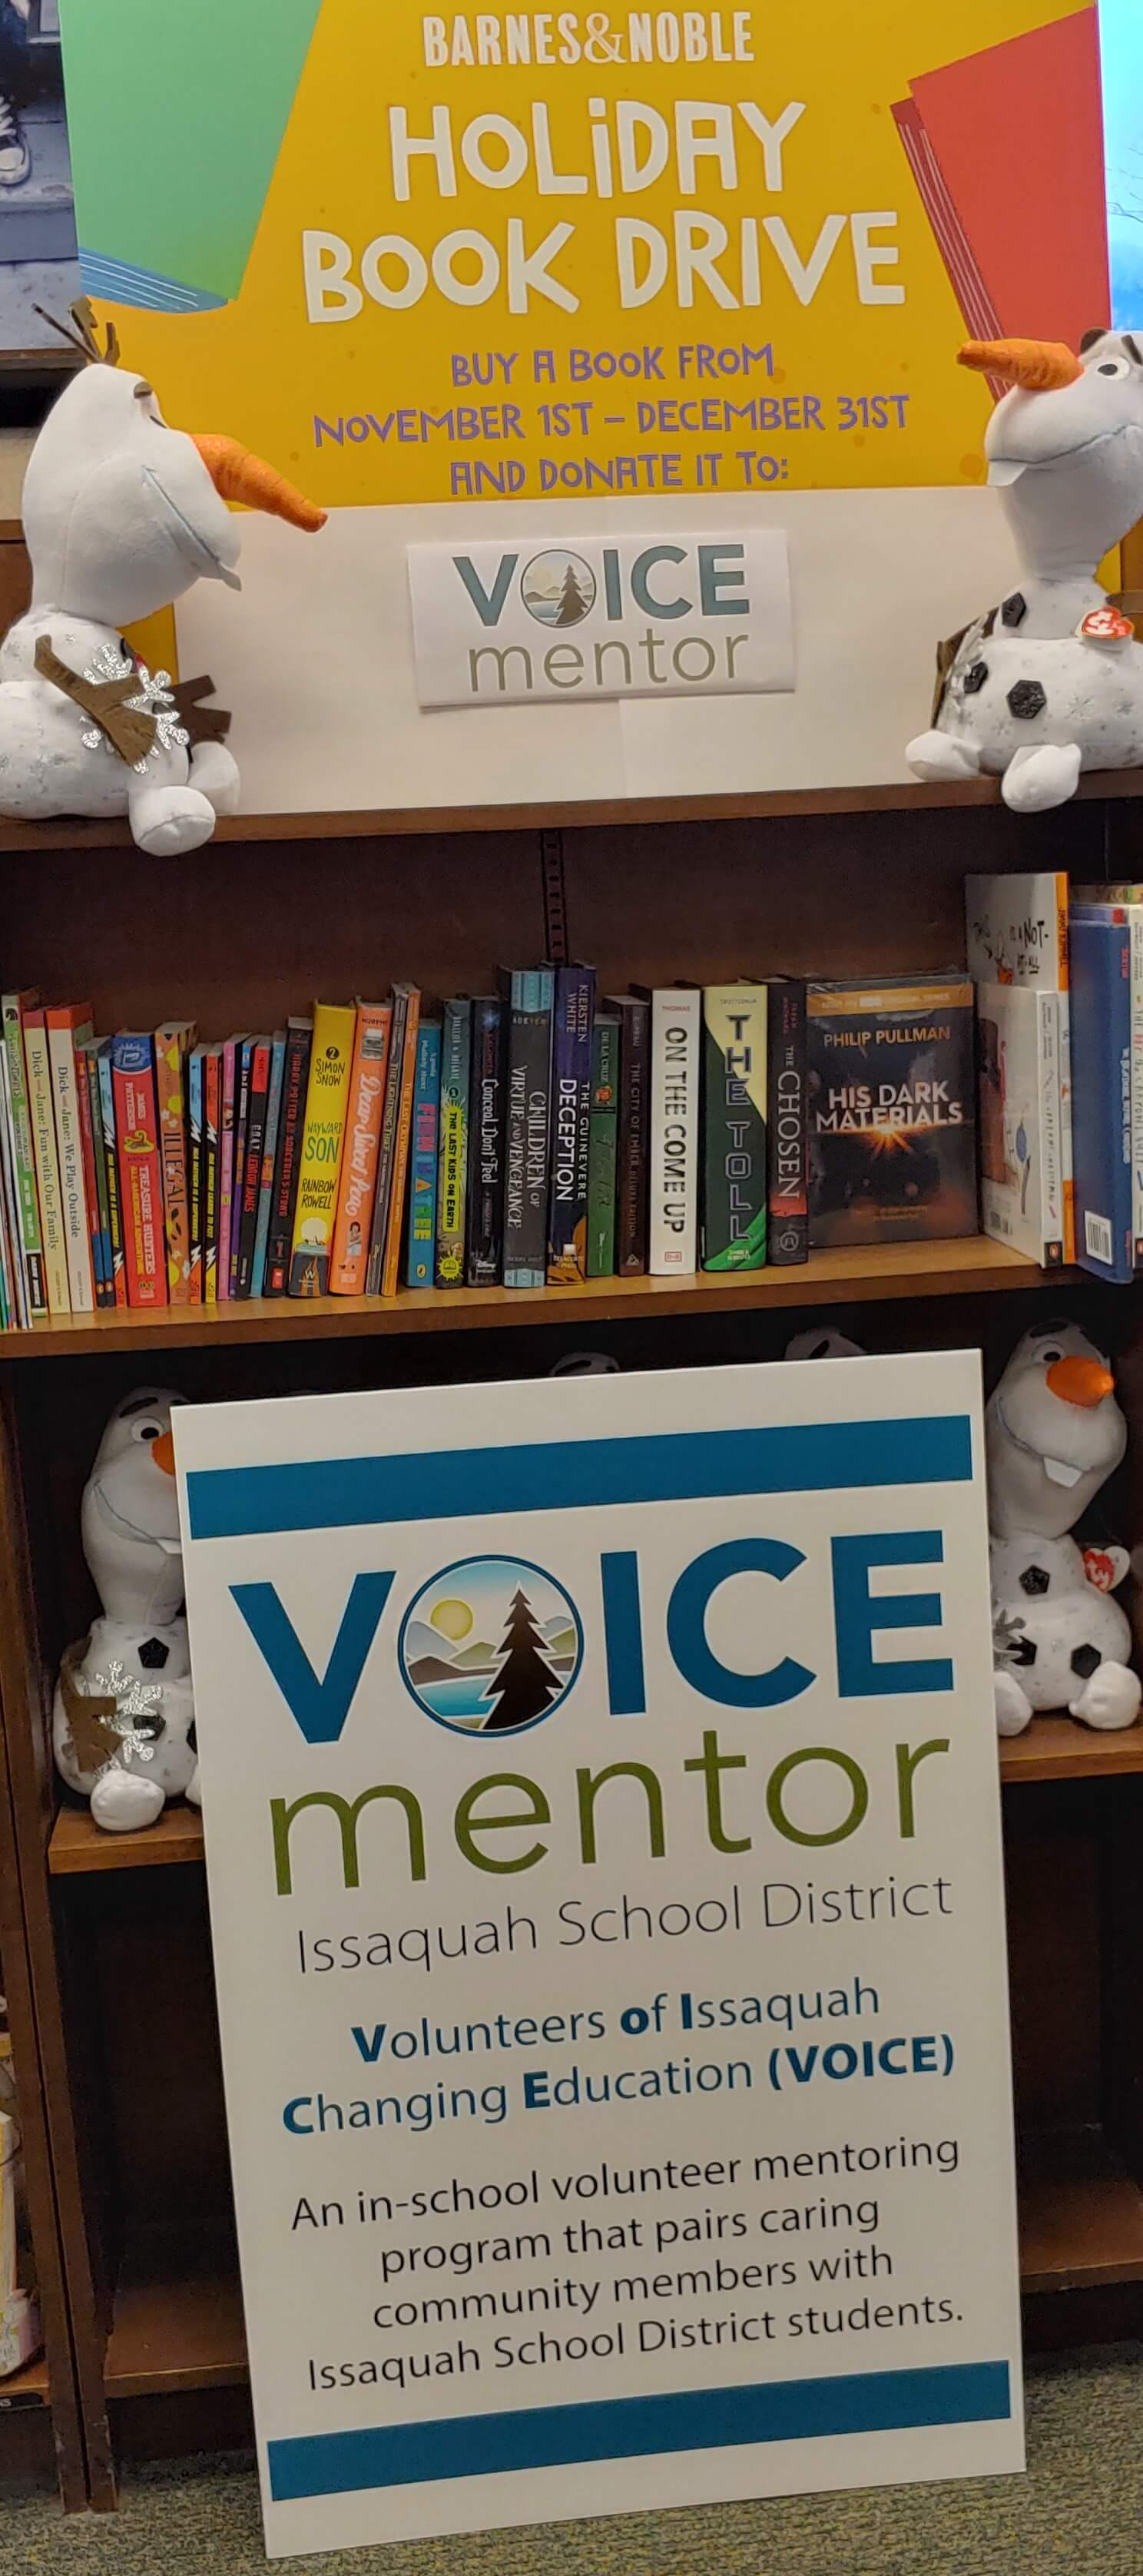 Picture of the VOICE Mentor book drive display